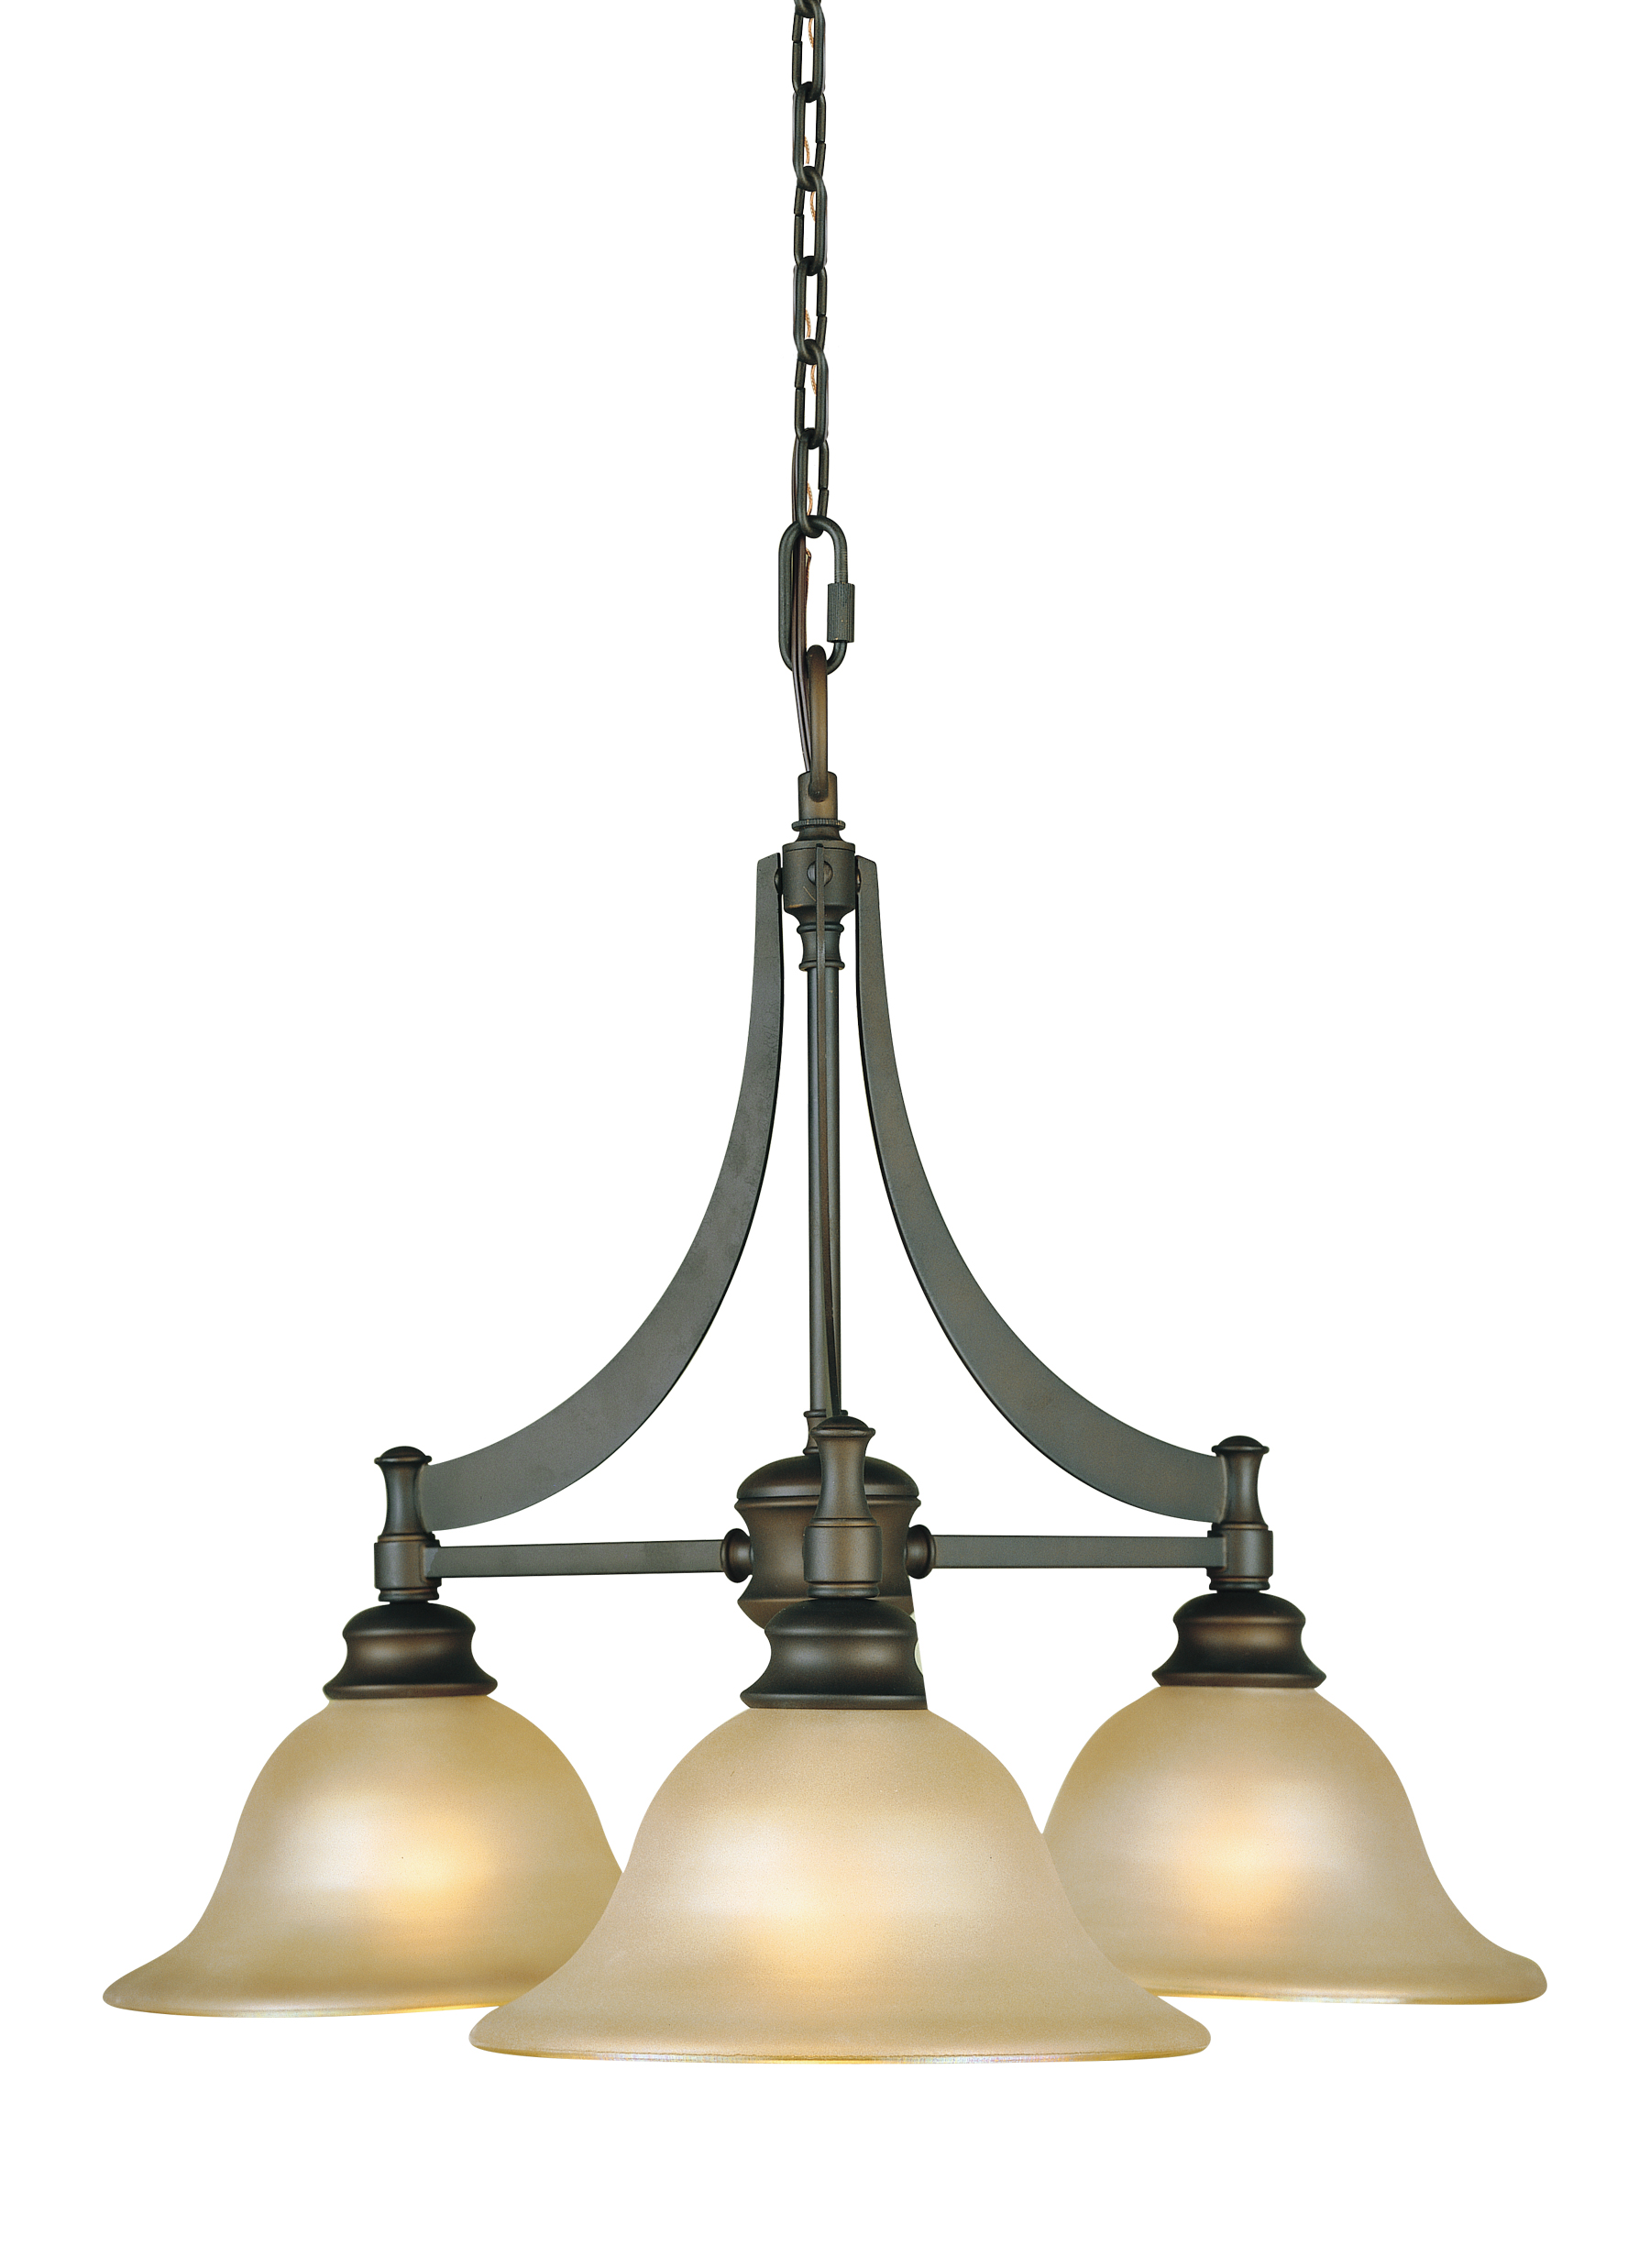 Oil Rubbed Bronze Kitchen Light Fixtures F1922 3orb3 Light Kitchen Chandelieroil Rubbed Bronze